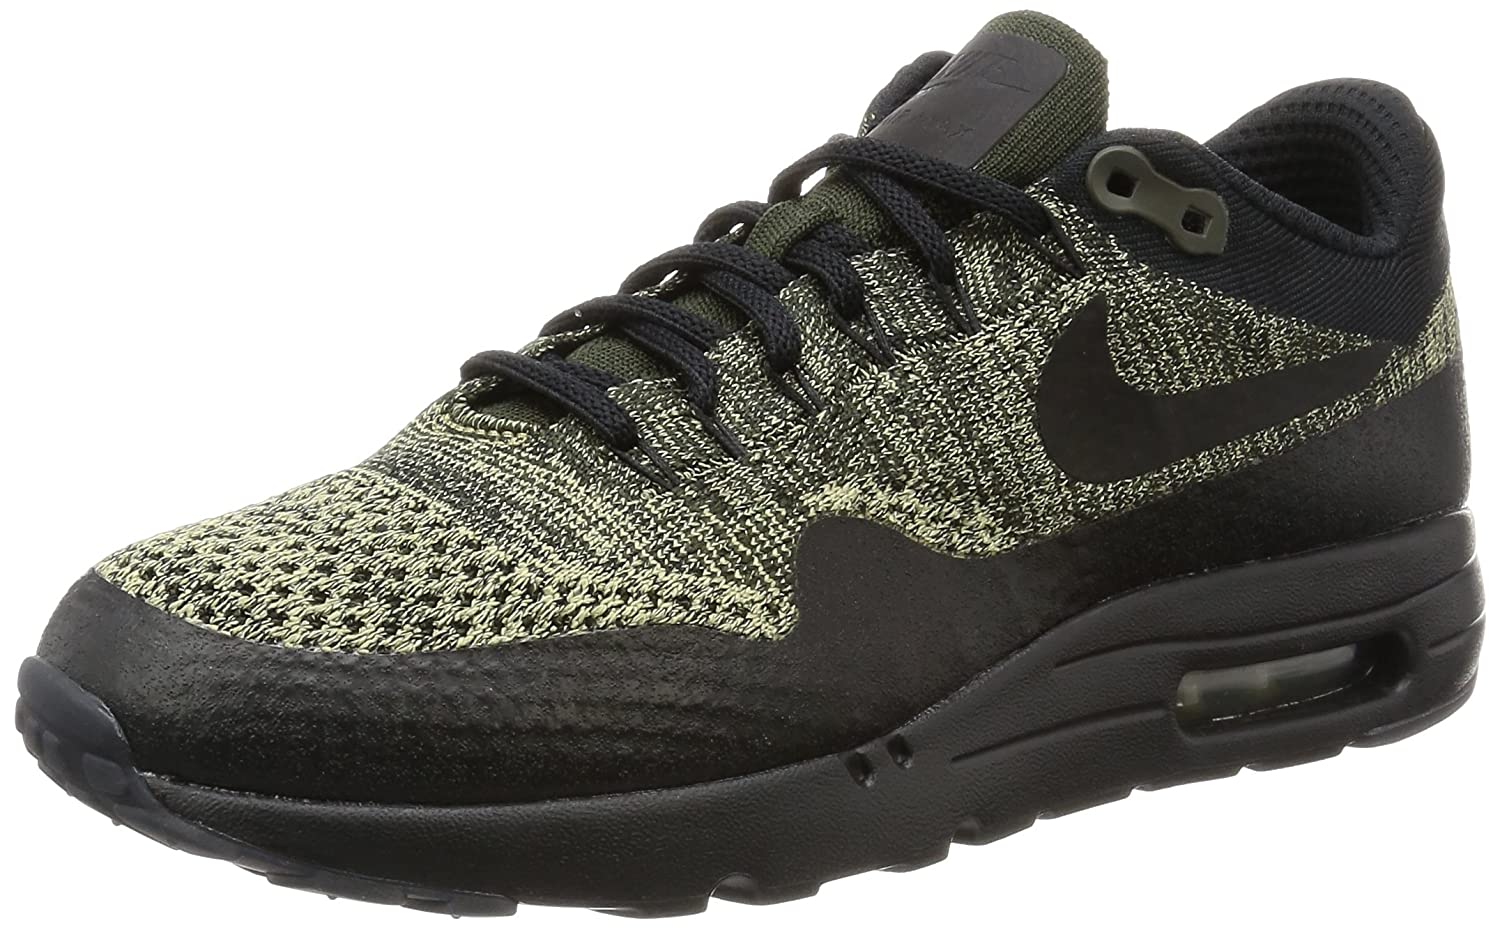 Nike Men's Air Max 1 Ultra Flyknit, BLACK/BLACK-ANTHRACITE B01L91F7A6 7 D(M) US|Neutral Olive Black Sequoia 203